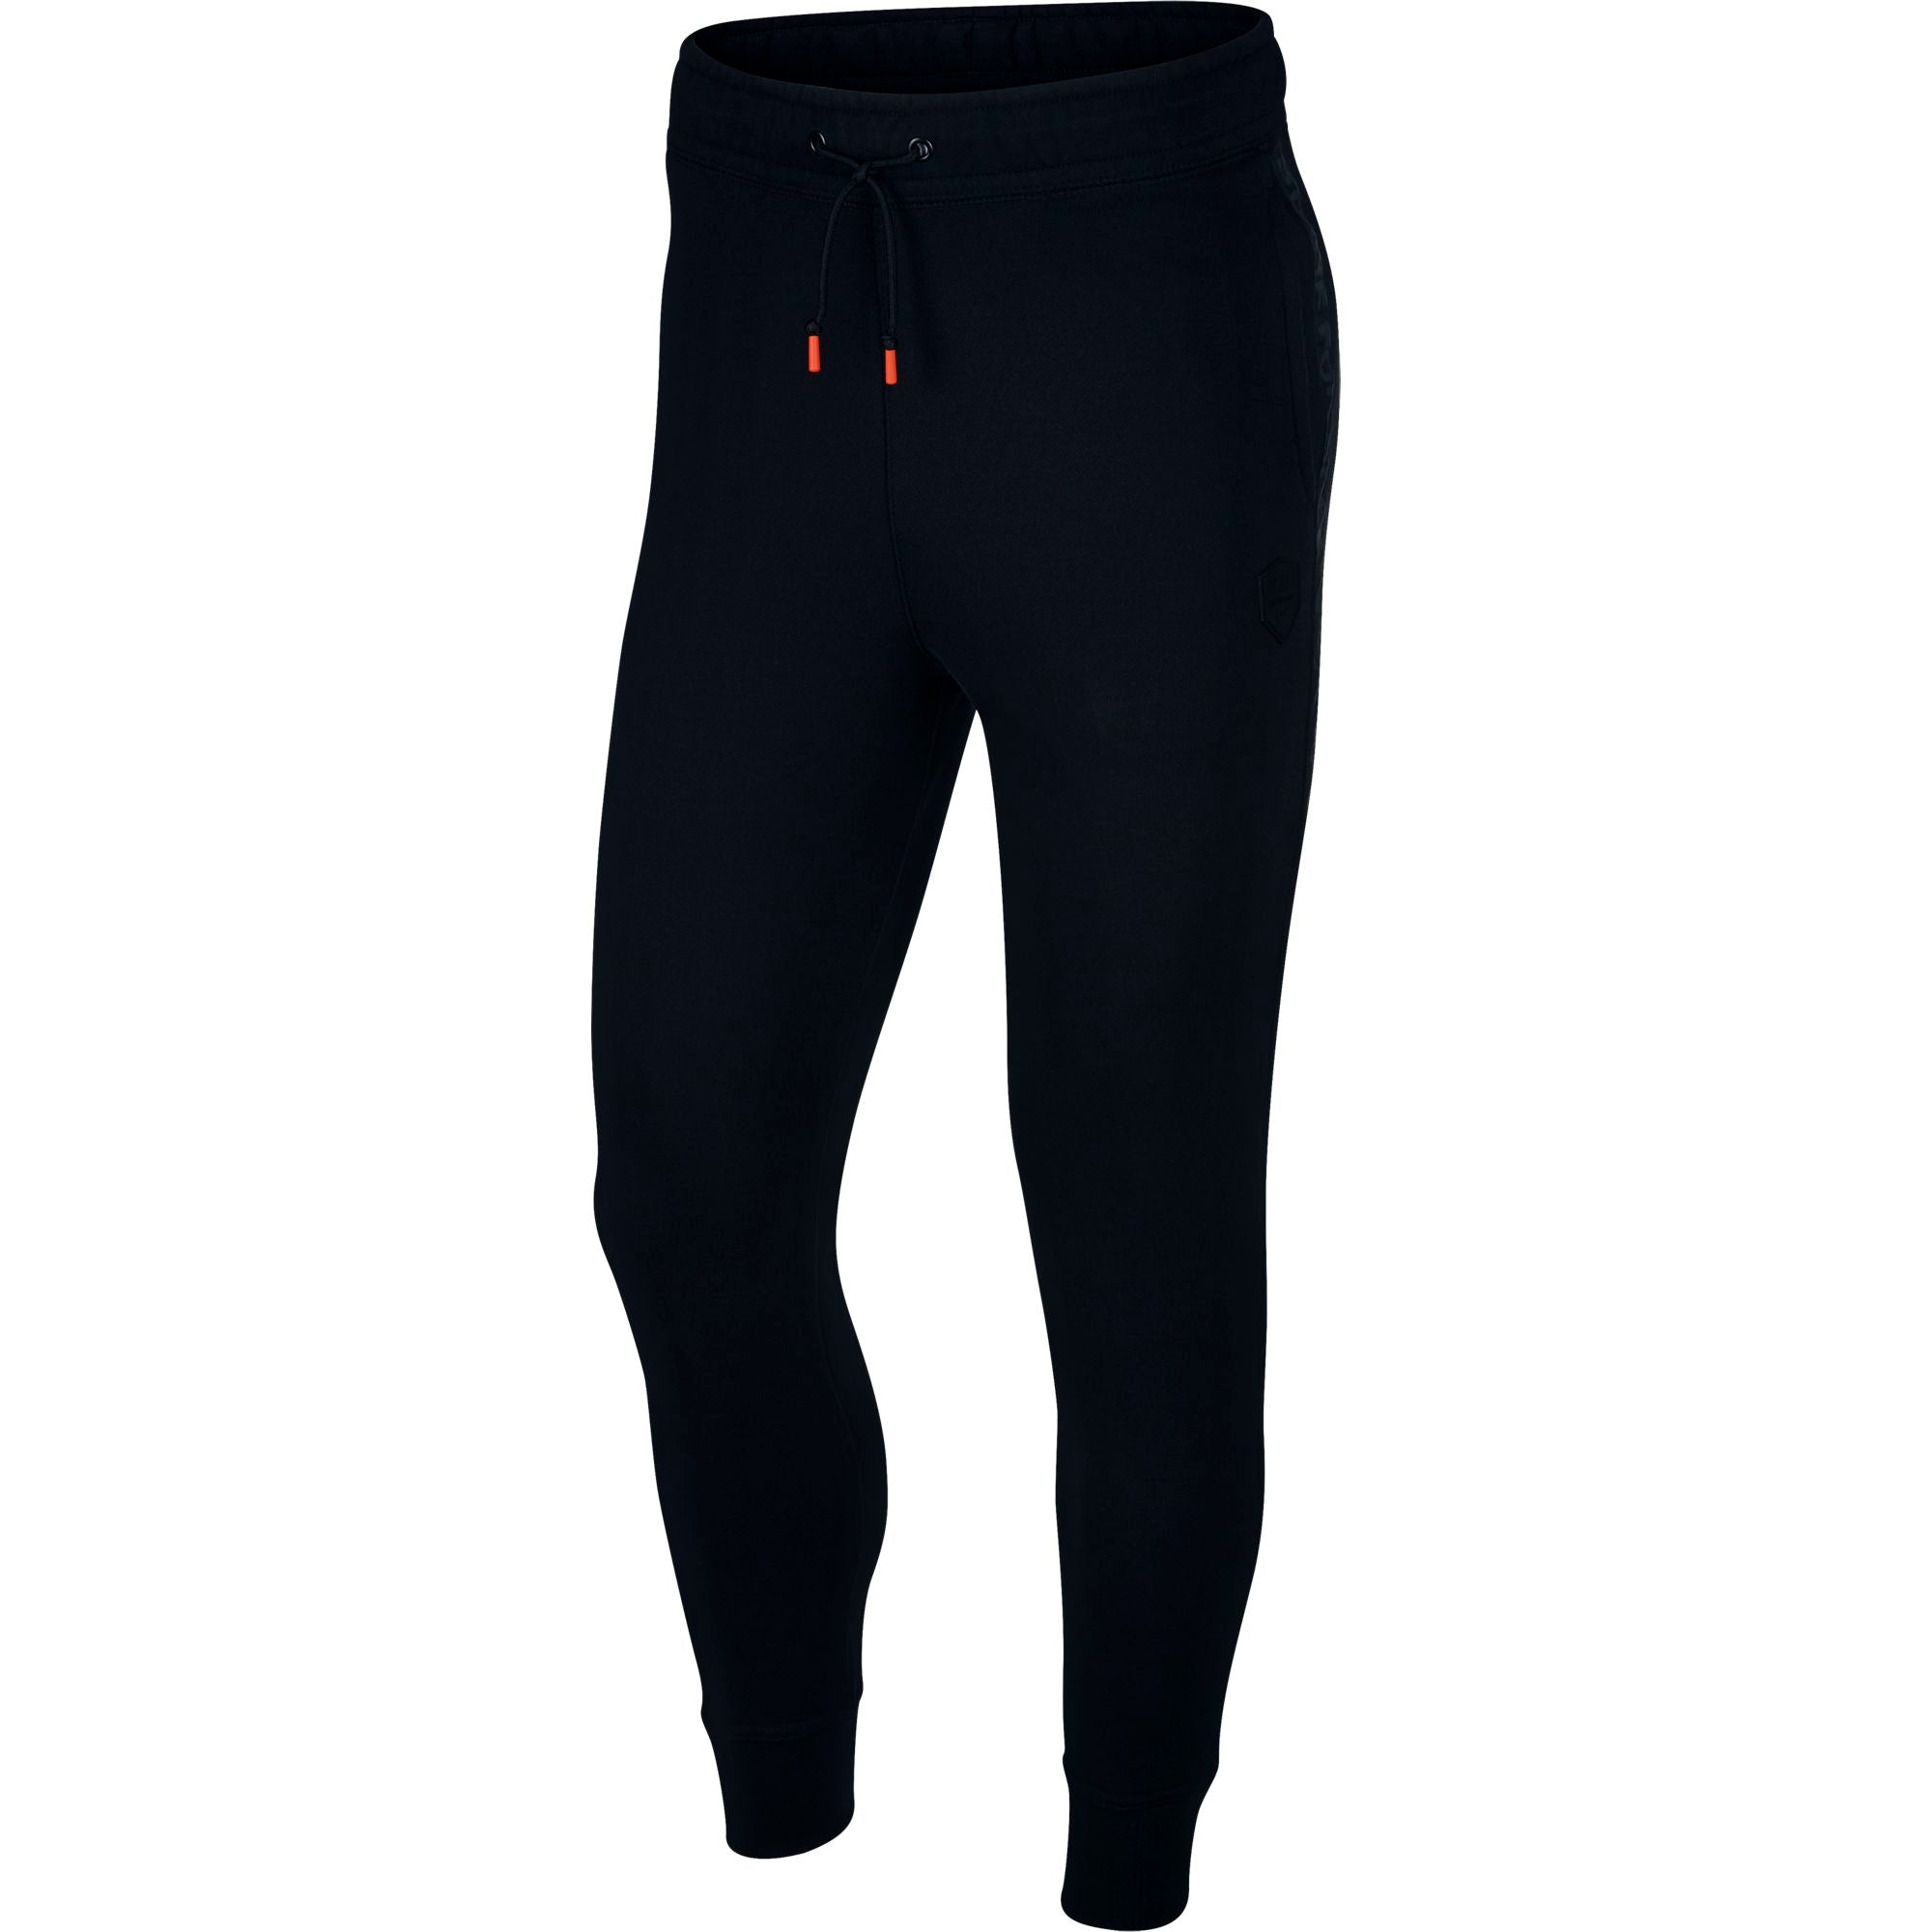 Nike Lebron Fleece Basketball Pants - NK-AT3898-010